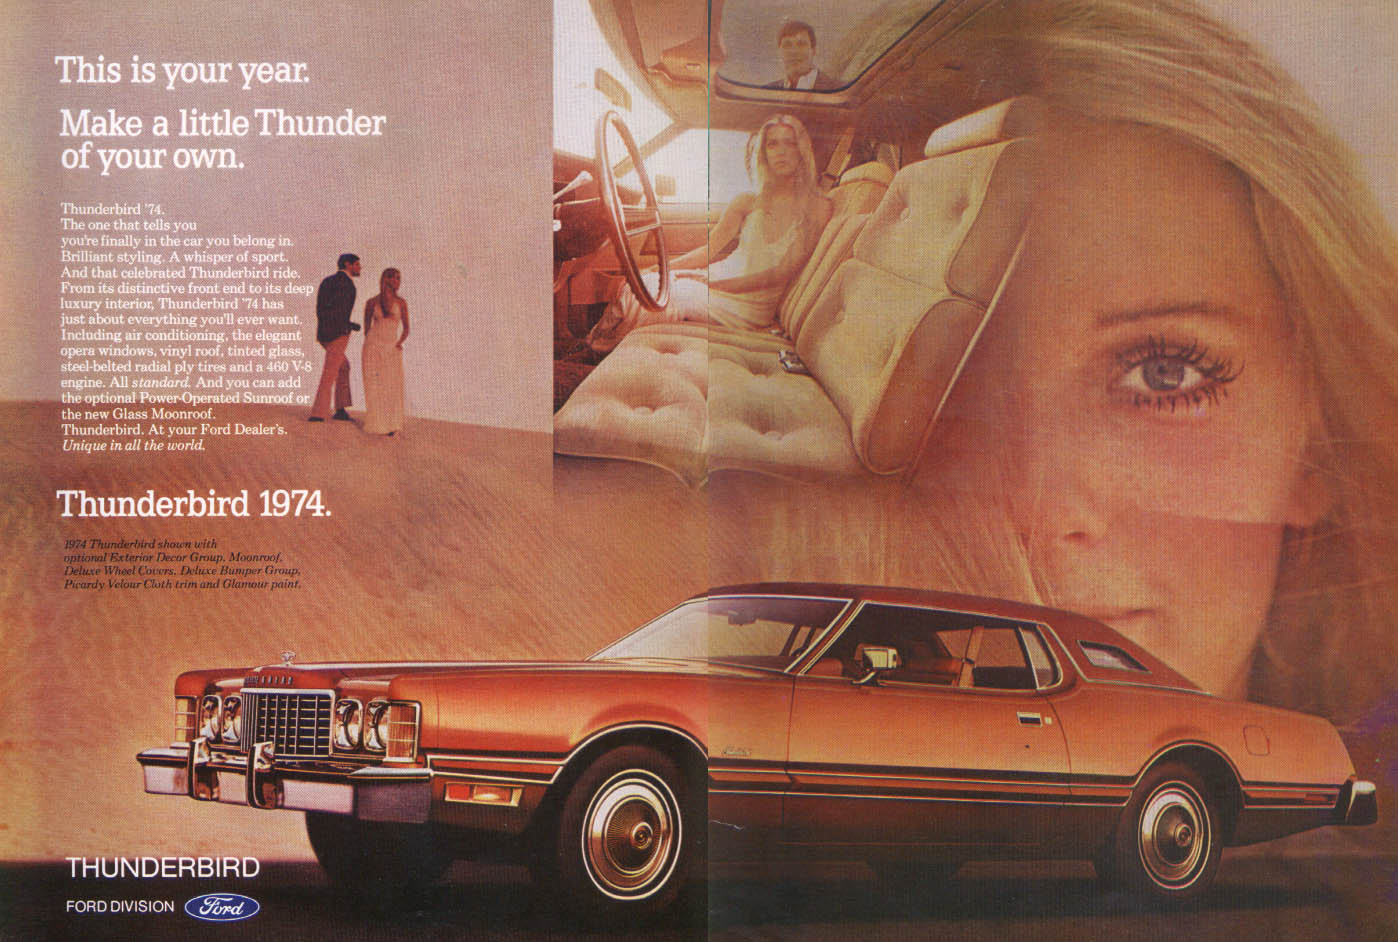 Ford Thunderbird Make Thunder Of Your Own Ad 1974